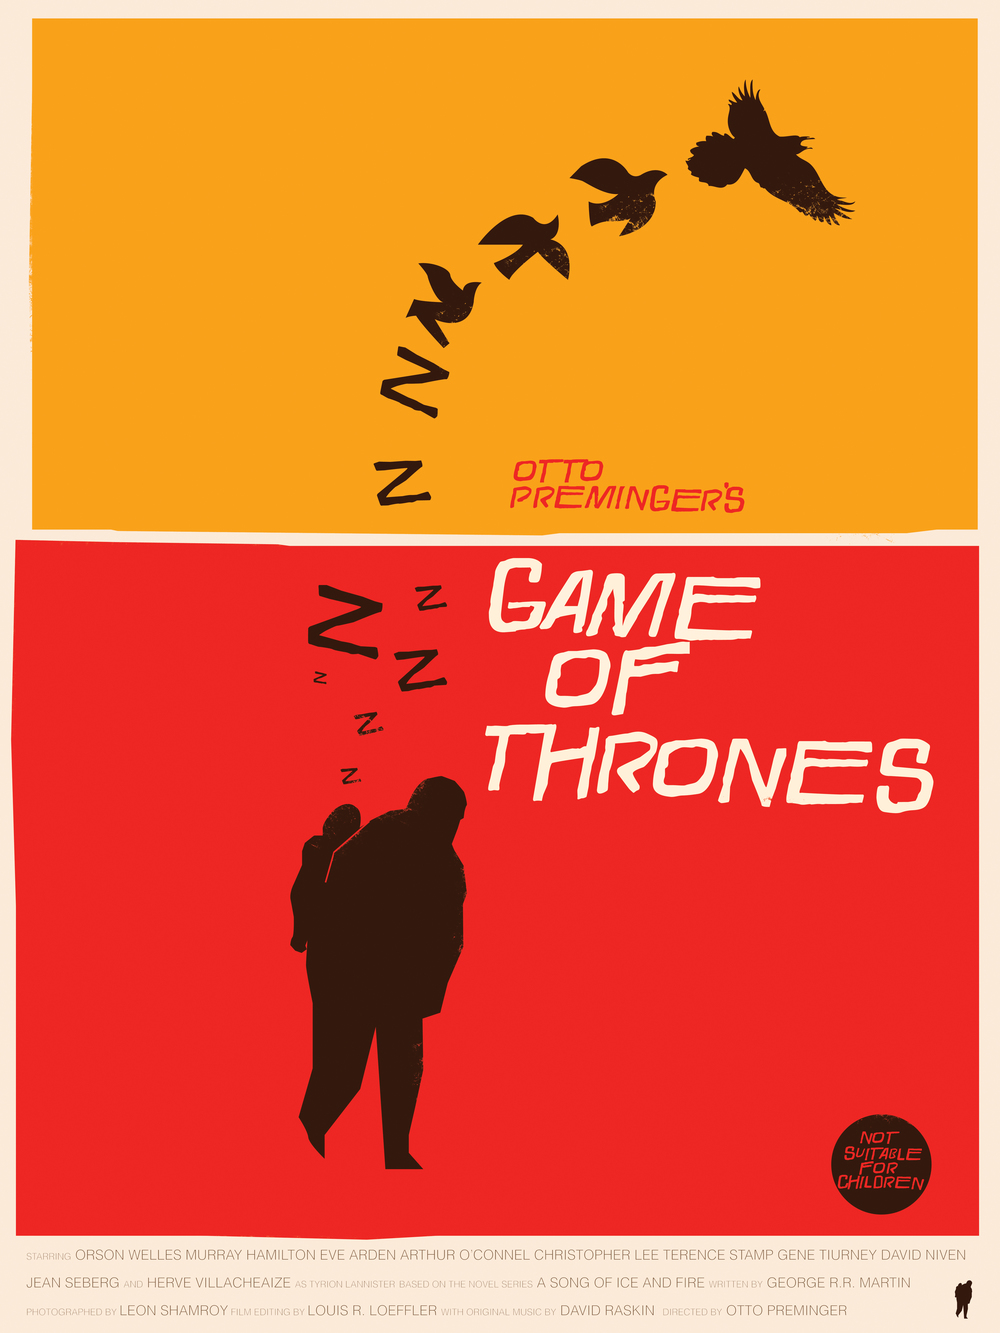 "The Little Lord of WInterfell Saul Bass Tribute 18"" by 24"" Giclee Print on Archival Matter Paper Signed & Numbered Limited run of only 35 $40.00"